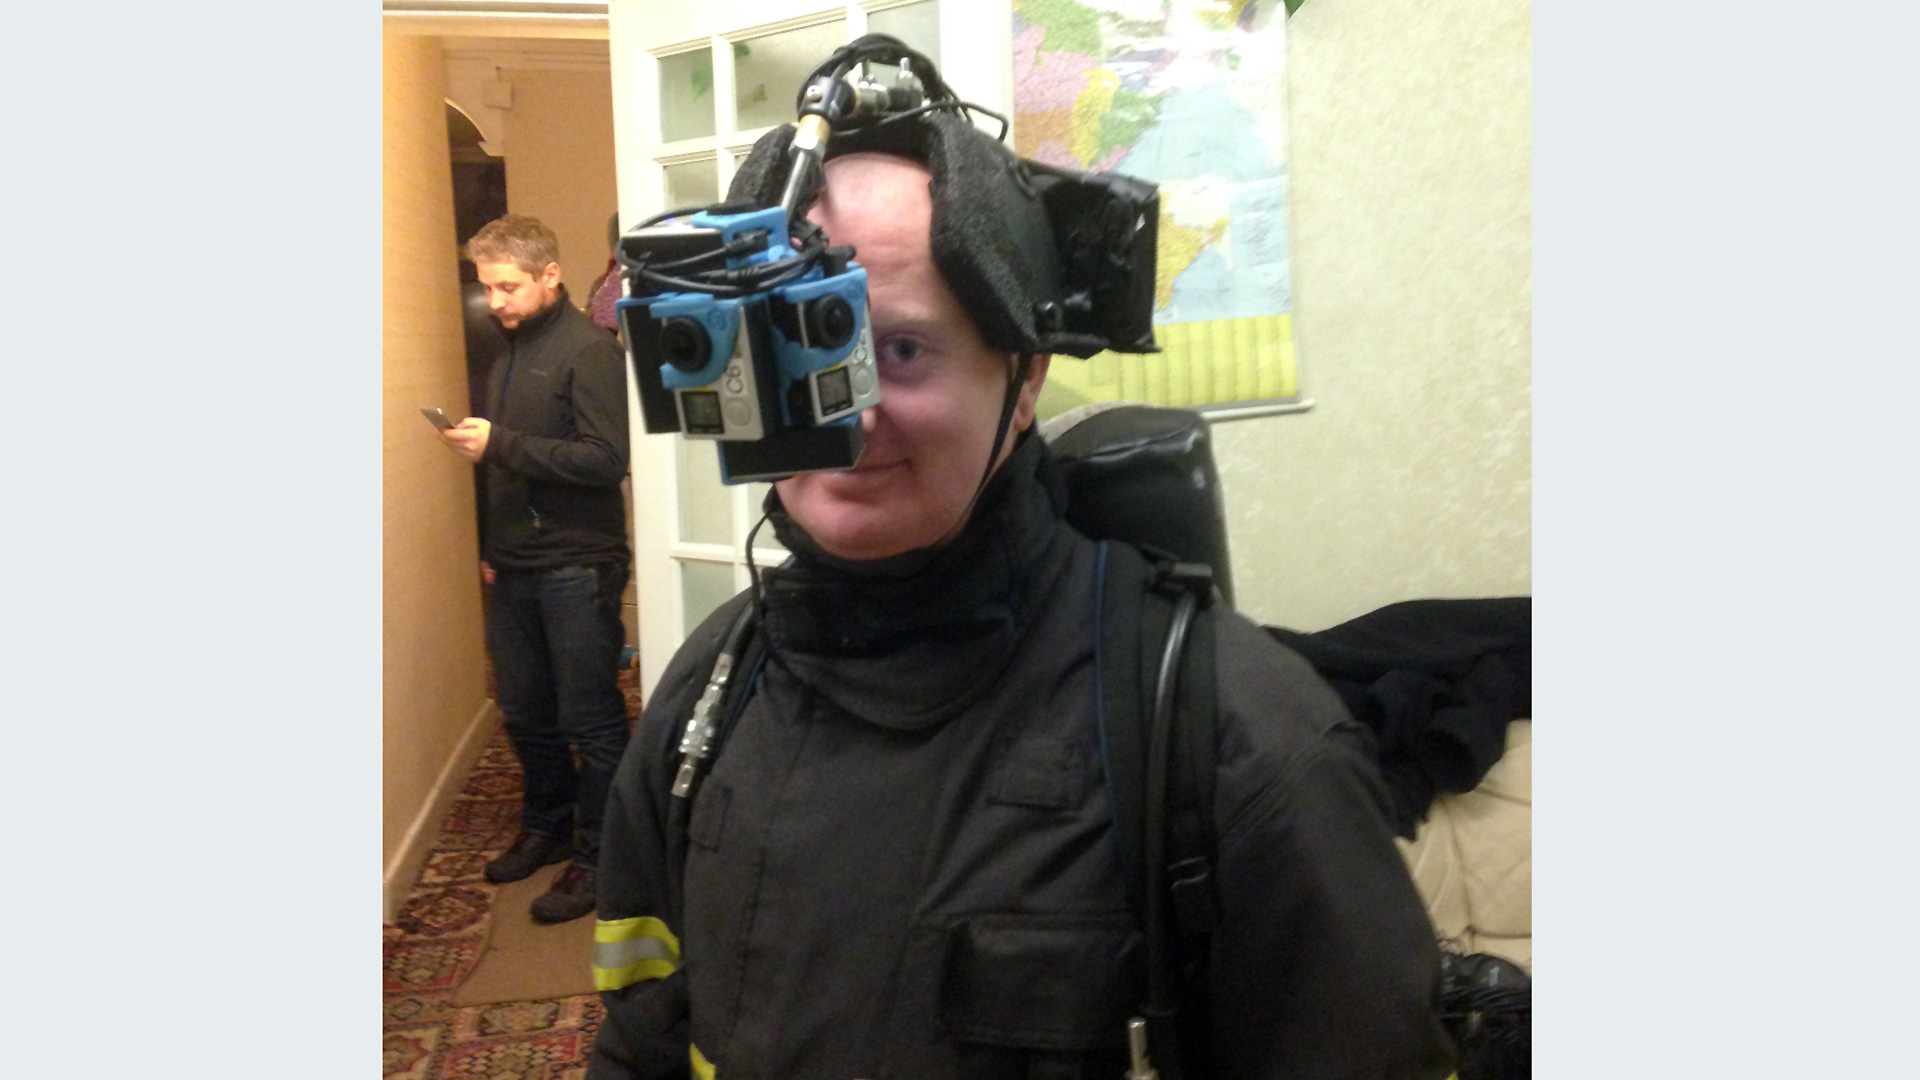 A fireman with a 360 camera rig hanging in front of his face